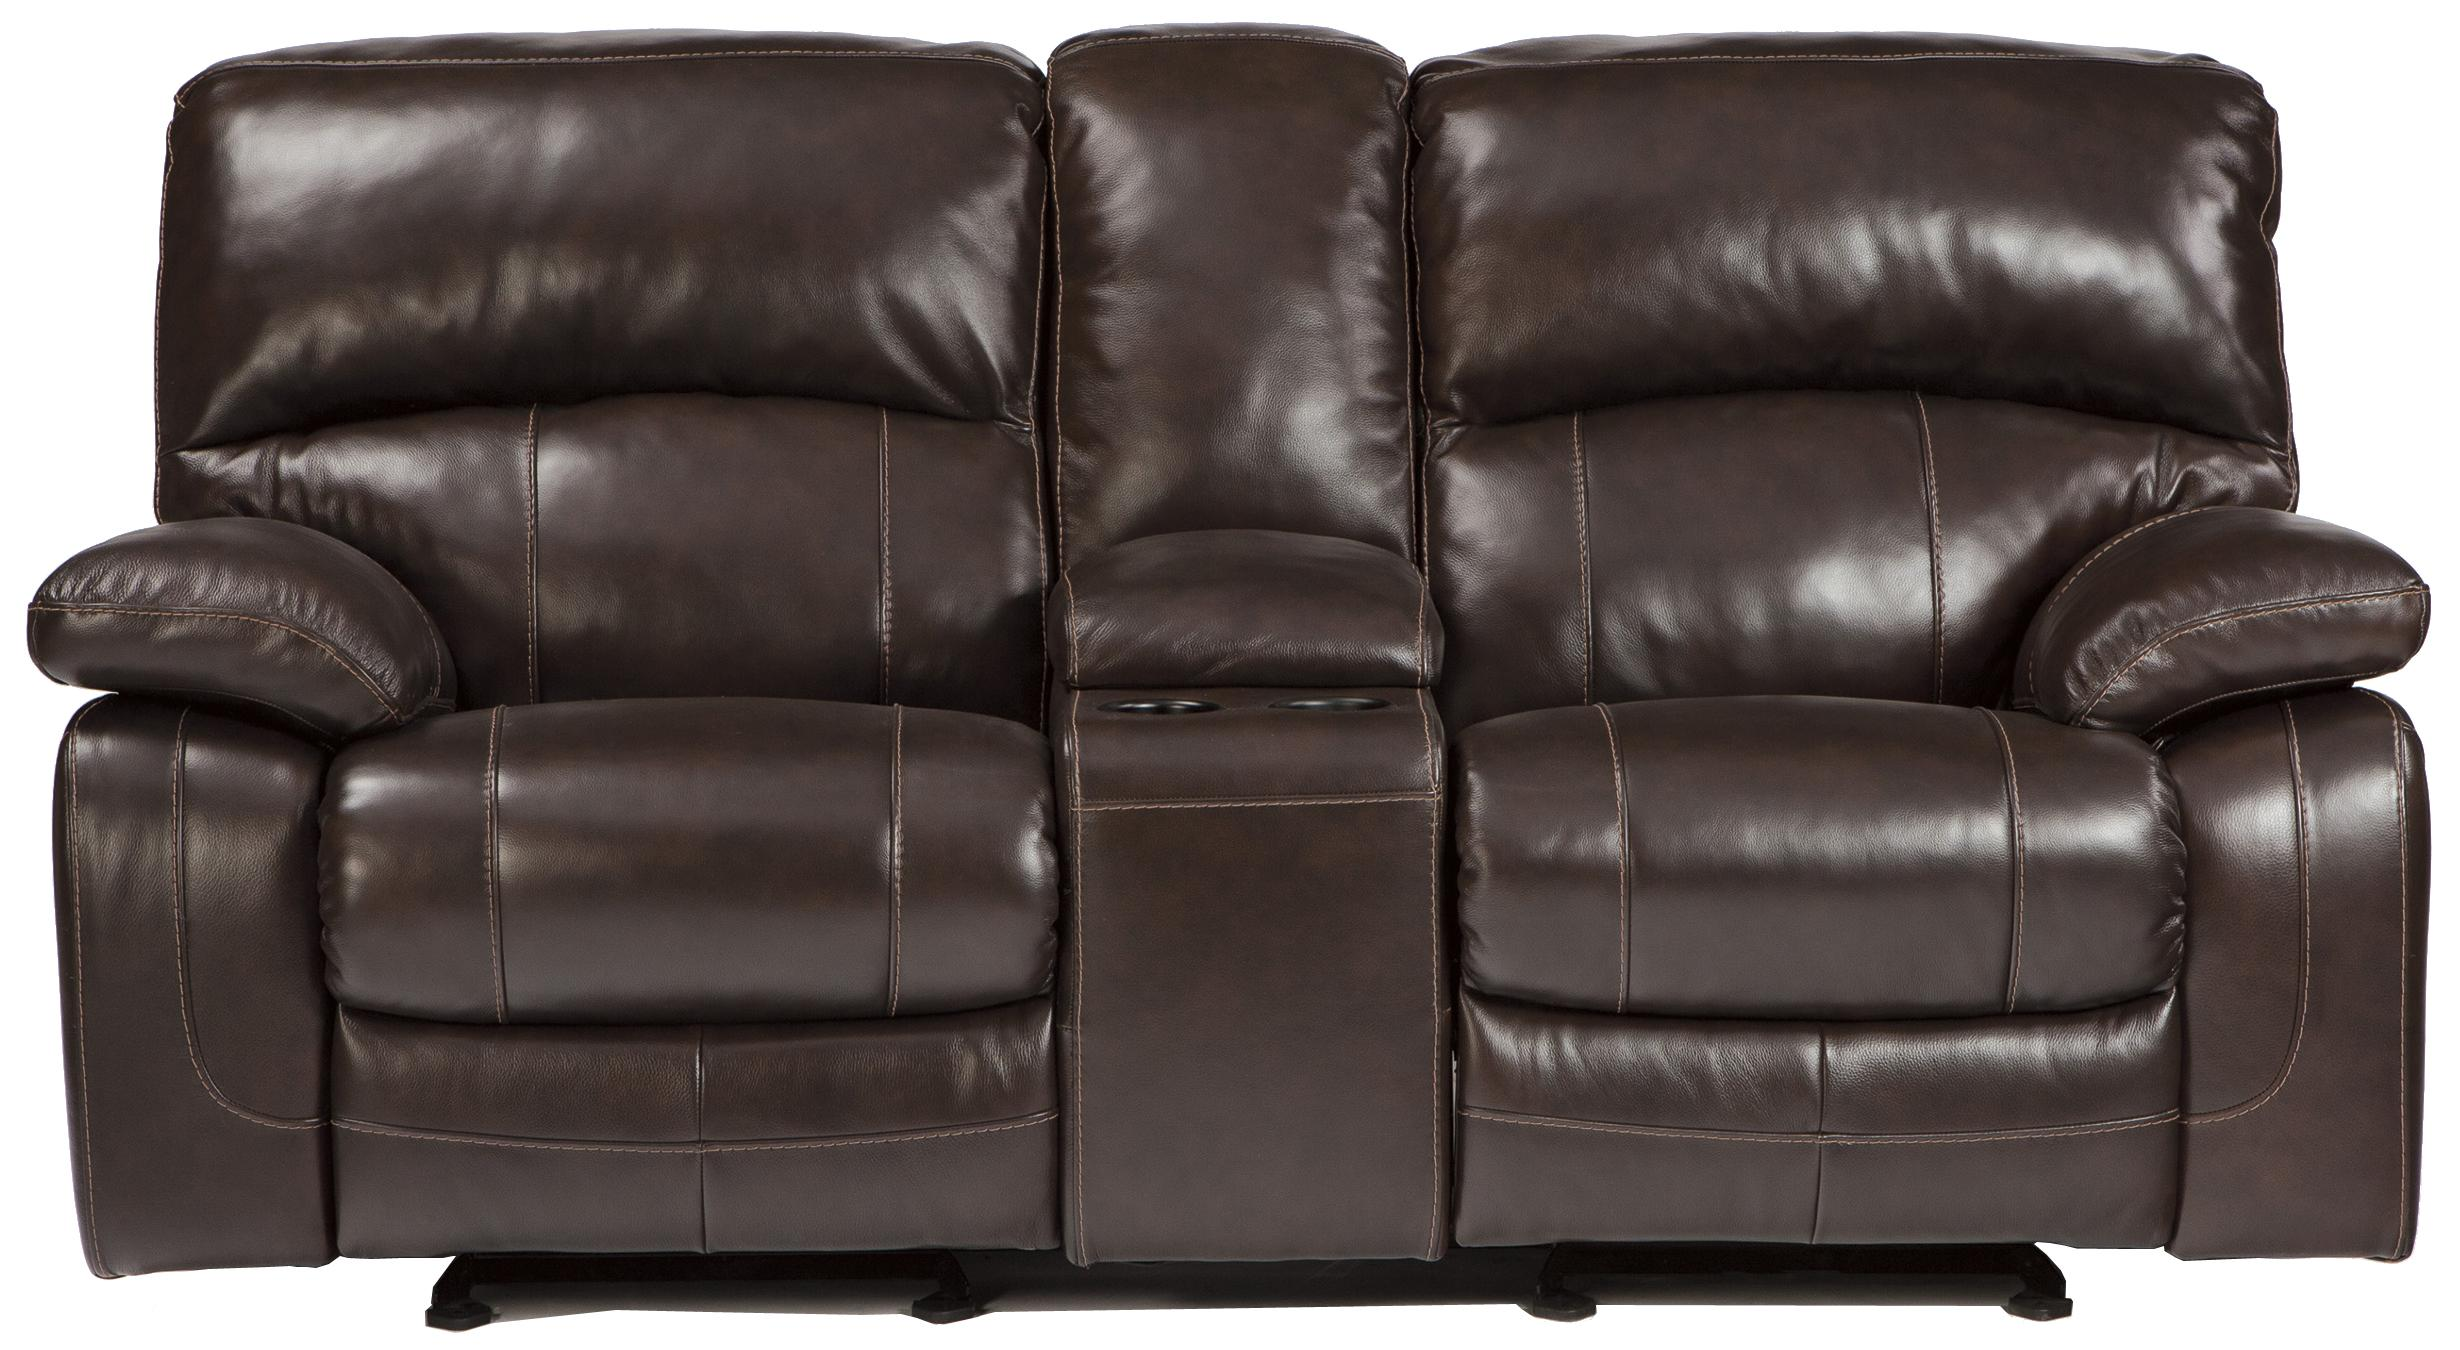 Glider Recliner Power Loveseat w/ Console